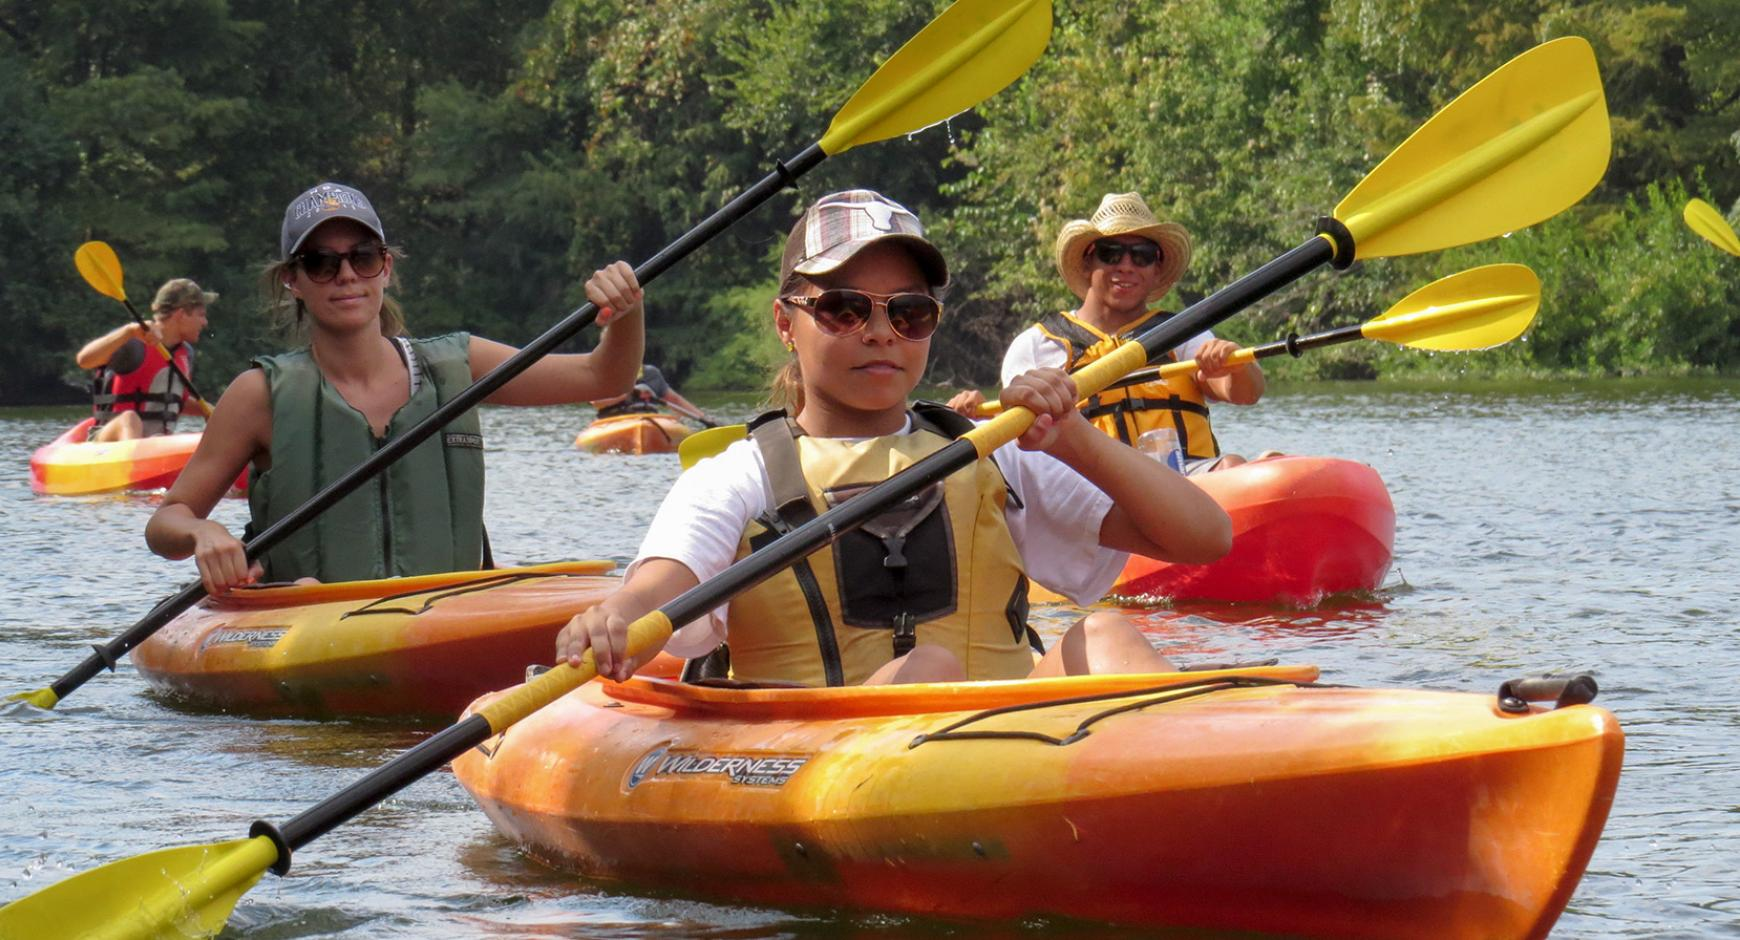 Several students learn how to kayak.